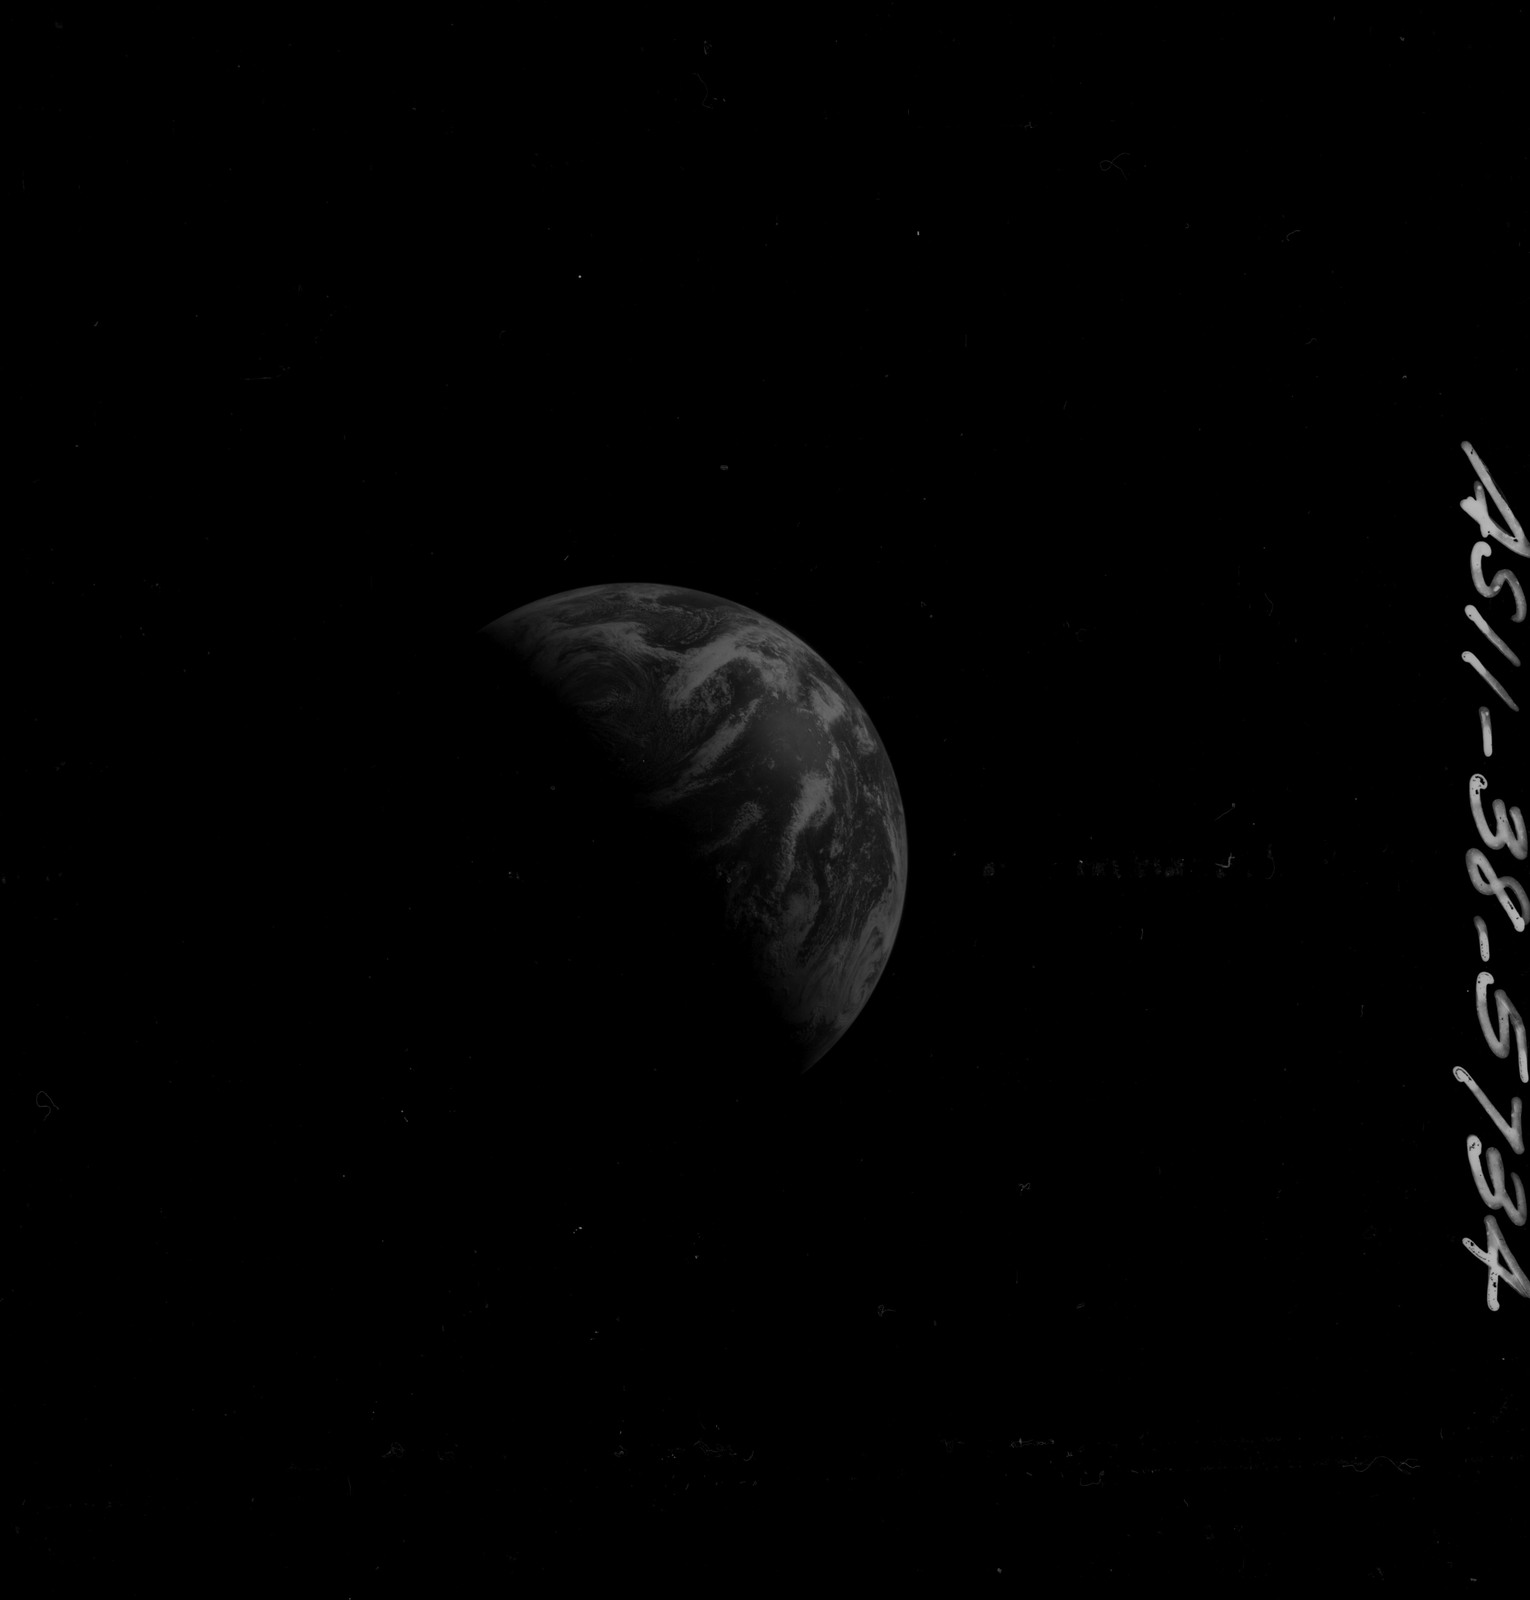 AS11-38-5734 - Apollo 11 - Apollo 11 Mission image - View of Earth after Transearth Insertion